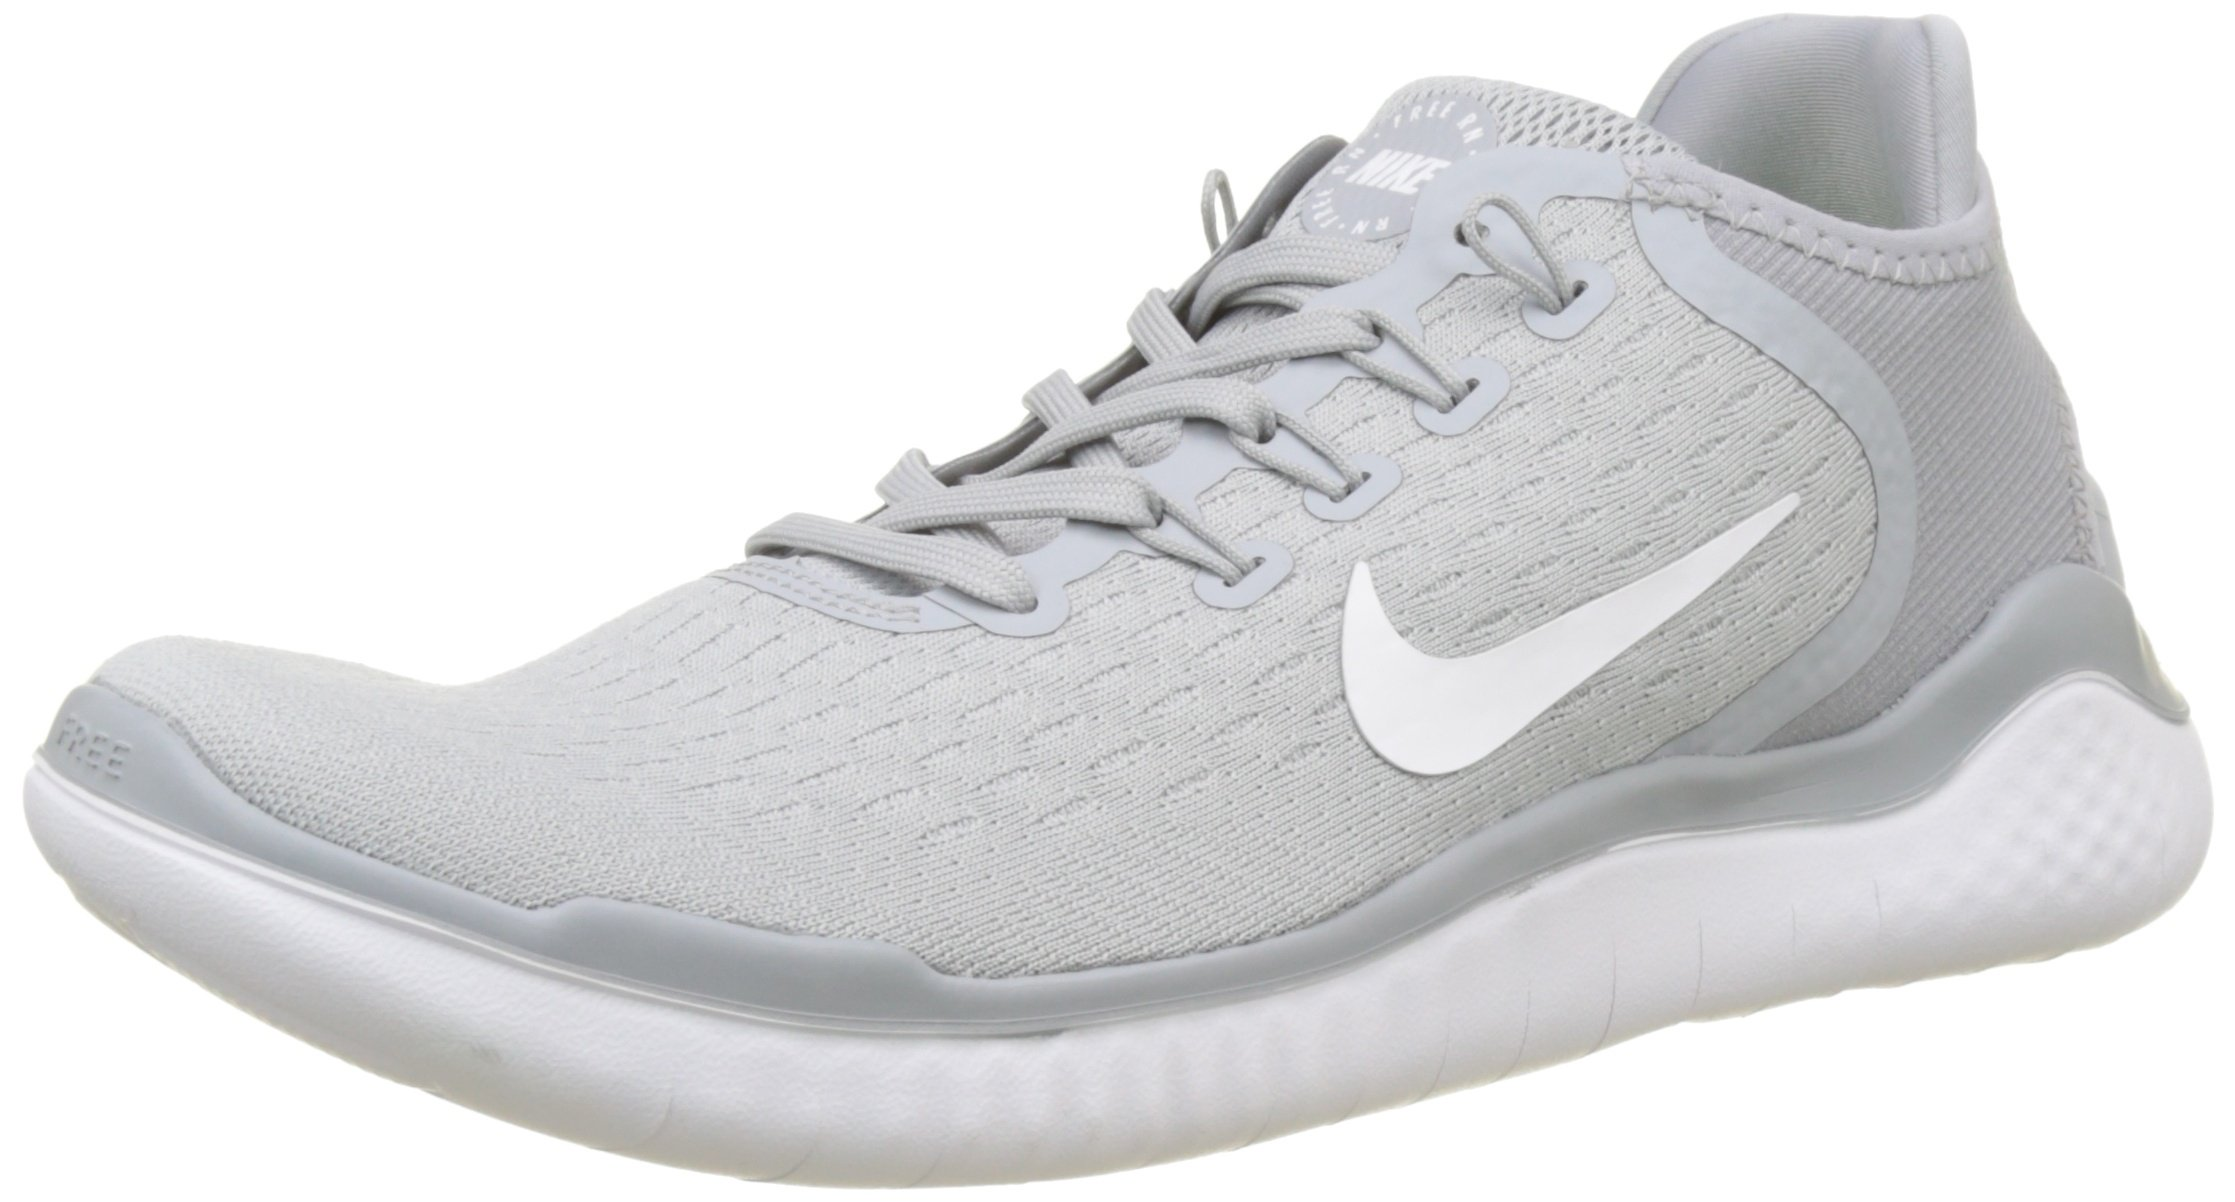 60d05c69332 Galleon - NIKE Mens Free Run 2018 Runing Shoes Wolf Grey White Volt 942836-003  Size 6.5